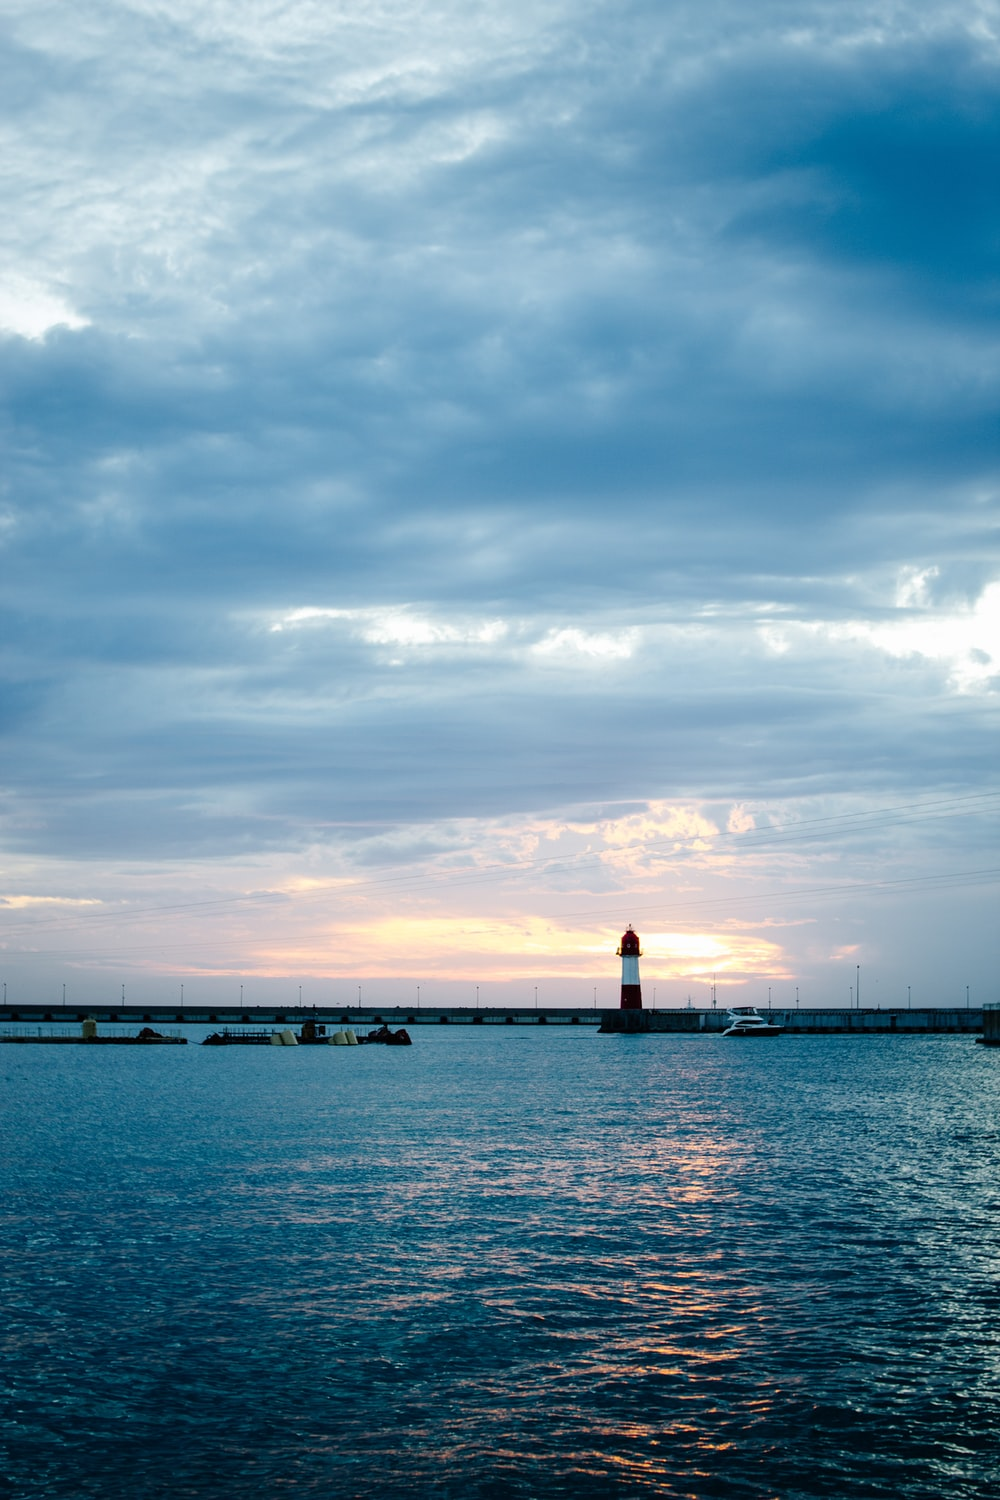 silhouette of lighthouse on sea dock under cloudy sky during daytime